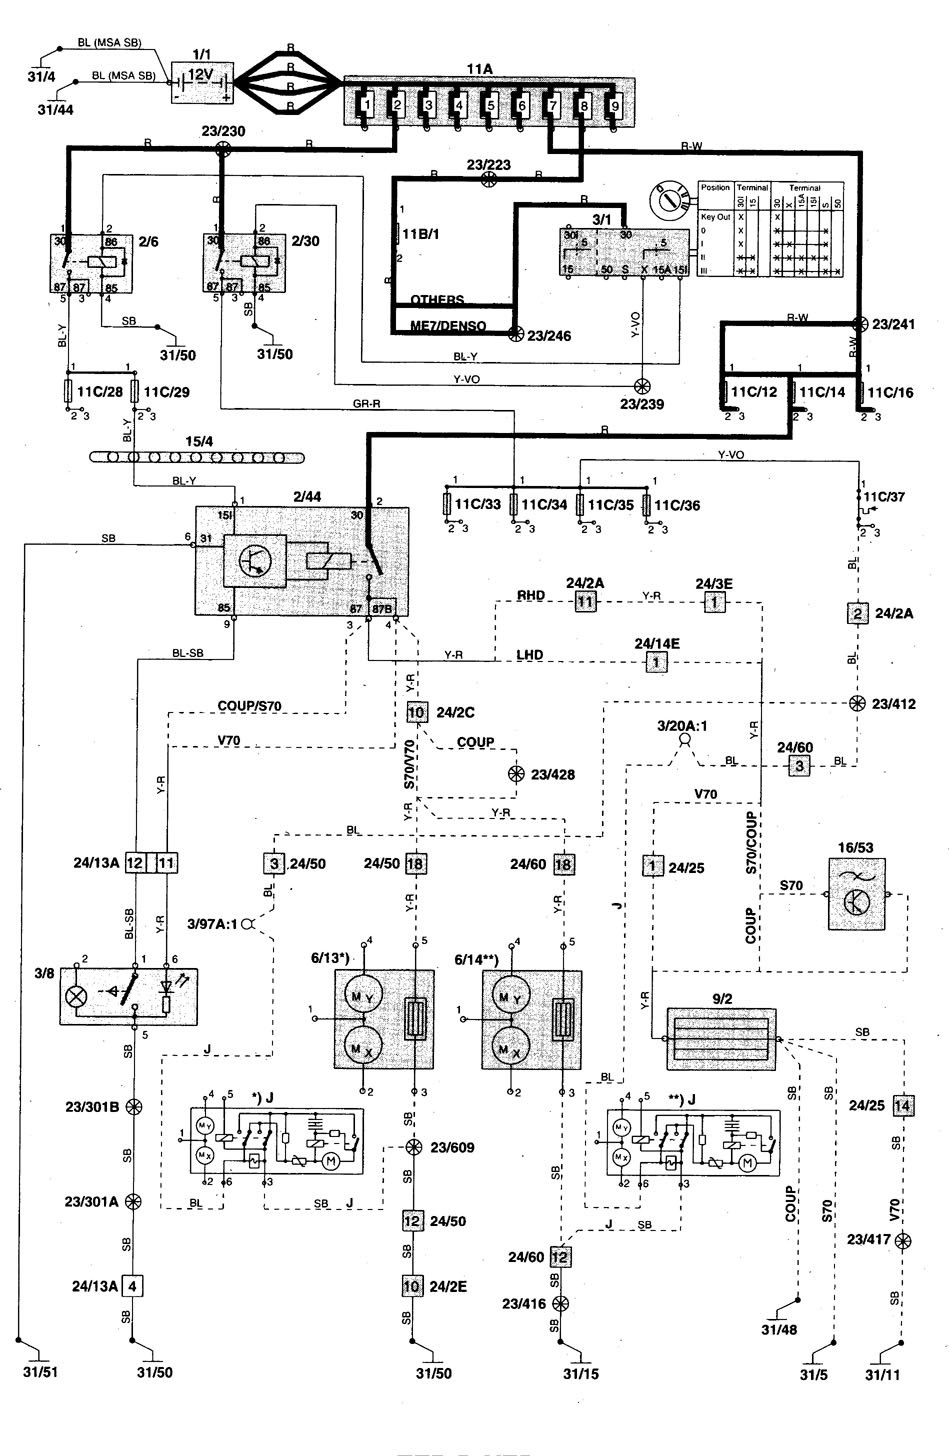 1998 Volvo S70 Dashboard Wiring Diagram | Wiring Diagram on volvo amazon wiring diagram, mercury milan wiring diagram, saturn aura wiring diagram, geo storm wiring diagram, mercedes e320 wiring diagram, porsche cayenne wiring diagram, bmw e90 wiring diagram, chevrolet volt wiring diagram, honda ascot wiring diagram, mitsubishi starion wiring diagram, chevrolet hhr wiring diagram, volkswagen cabrio wiring diagram, volvo ignition wiring diagram, pontiac trans sport wiring diagram, chrysler crossfire wiring diagram, volvo 850 shop manual, volvo 850 suspension, dodge omni wiring diagram, volvo 850 water pump, volkswagen golf wiring diagram,